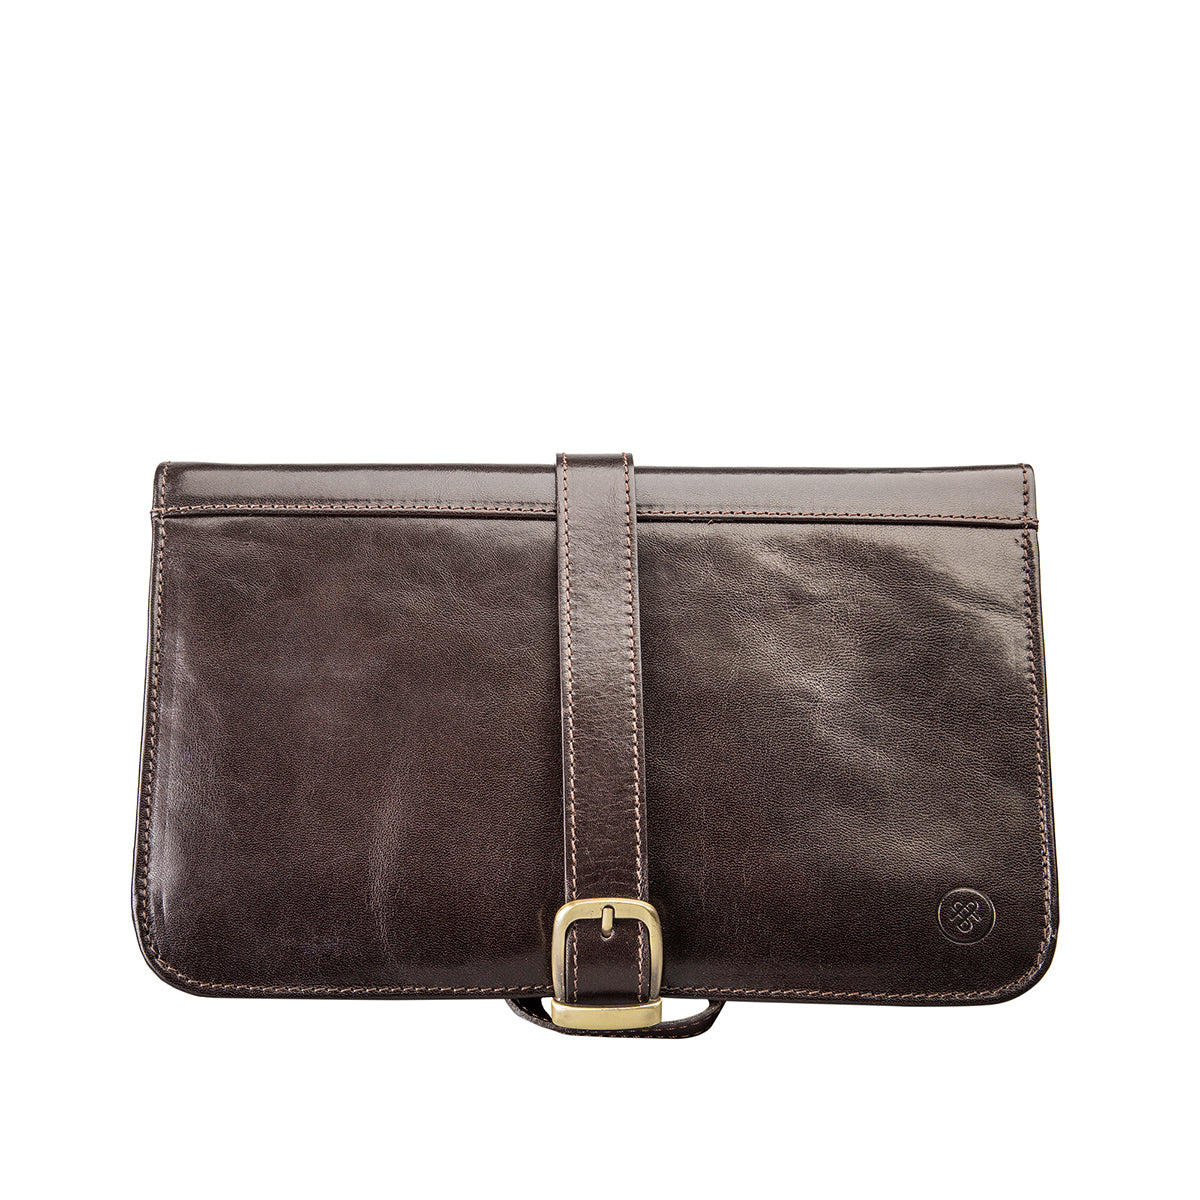 Image 1 of the 'Pratello' Dark Chocolate Veg-Tanned Leather Wash Bag